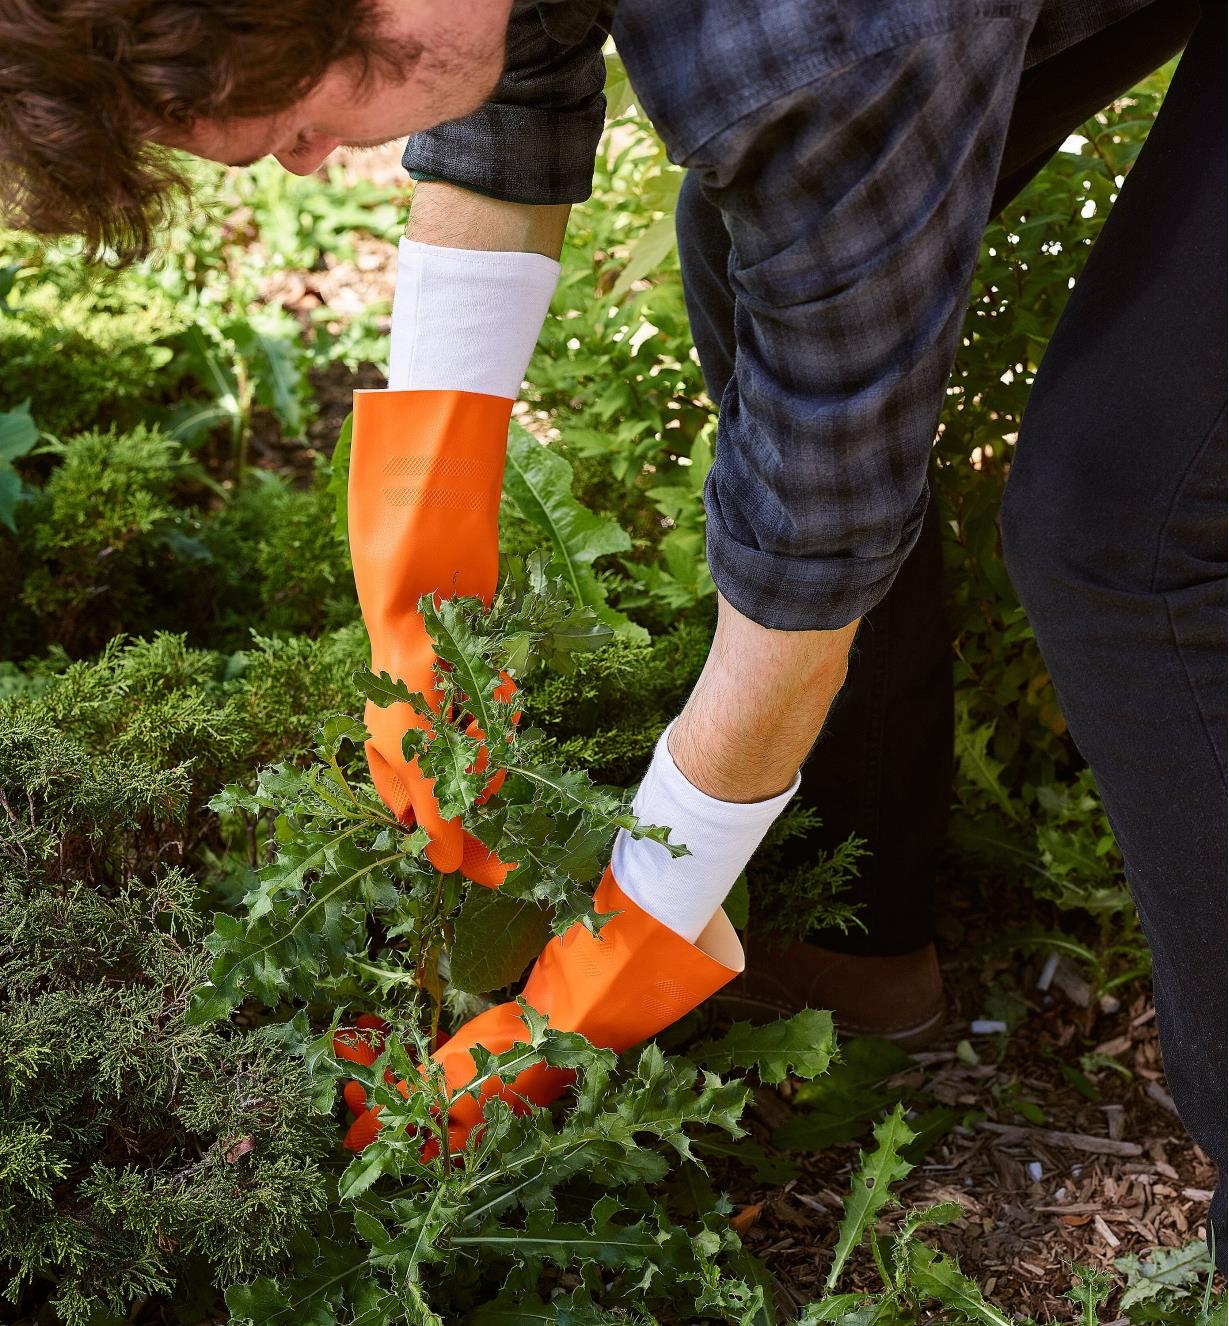 A gardener wearing glove liners under rubber gloves while pulling weeds